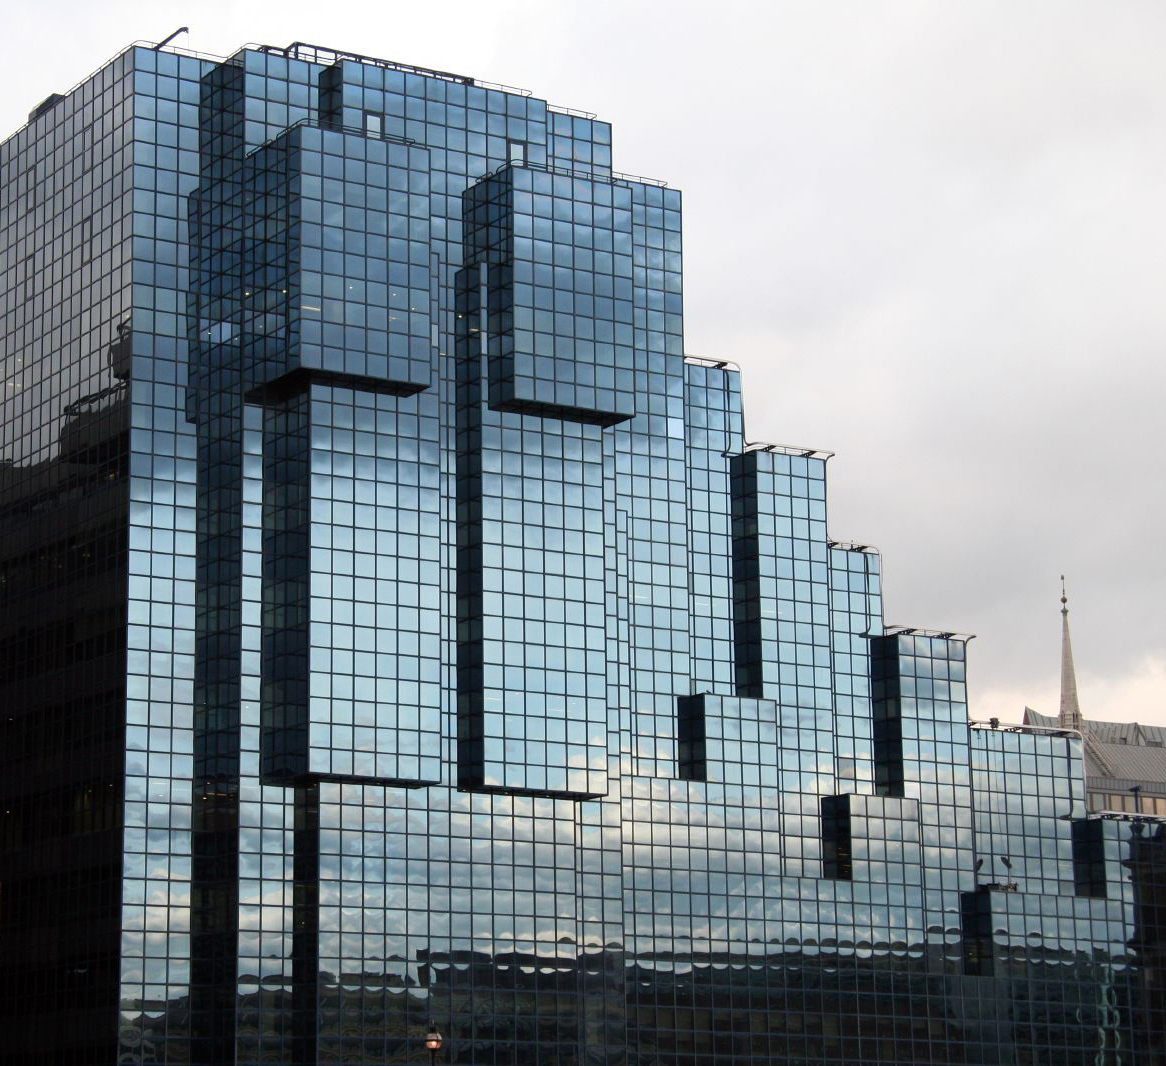 Prospect Brokers Offices - Northern and Shell Building London